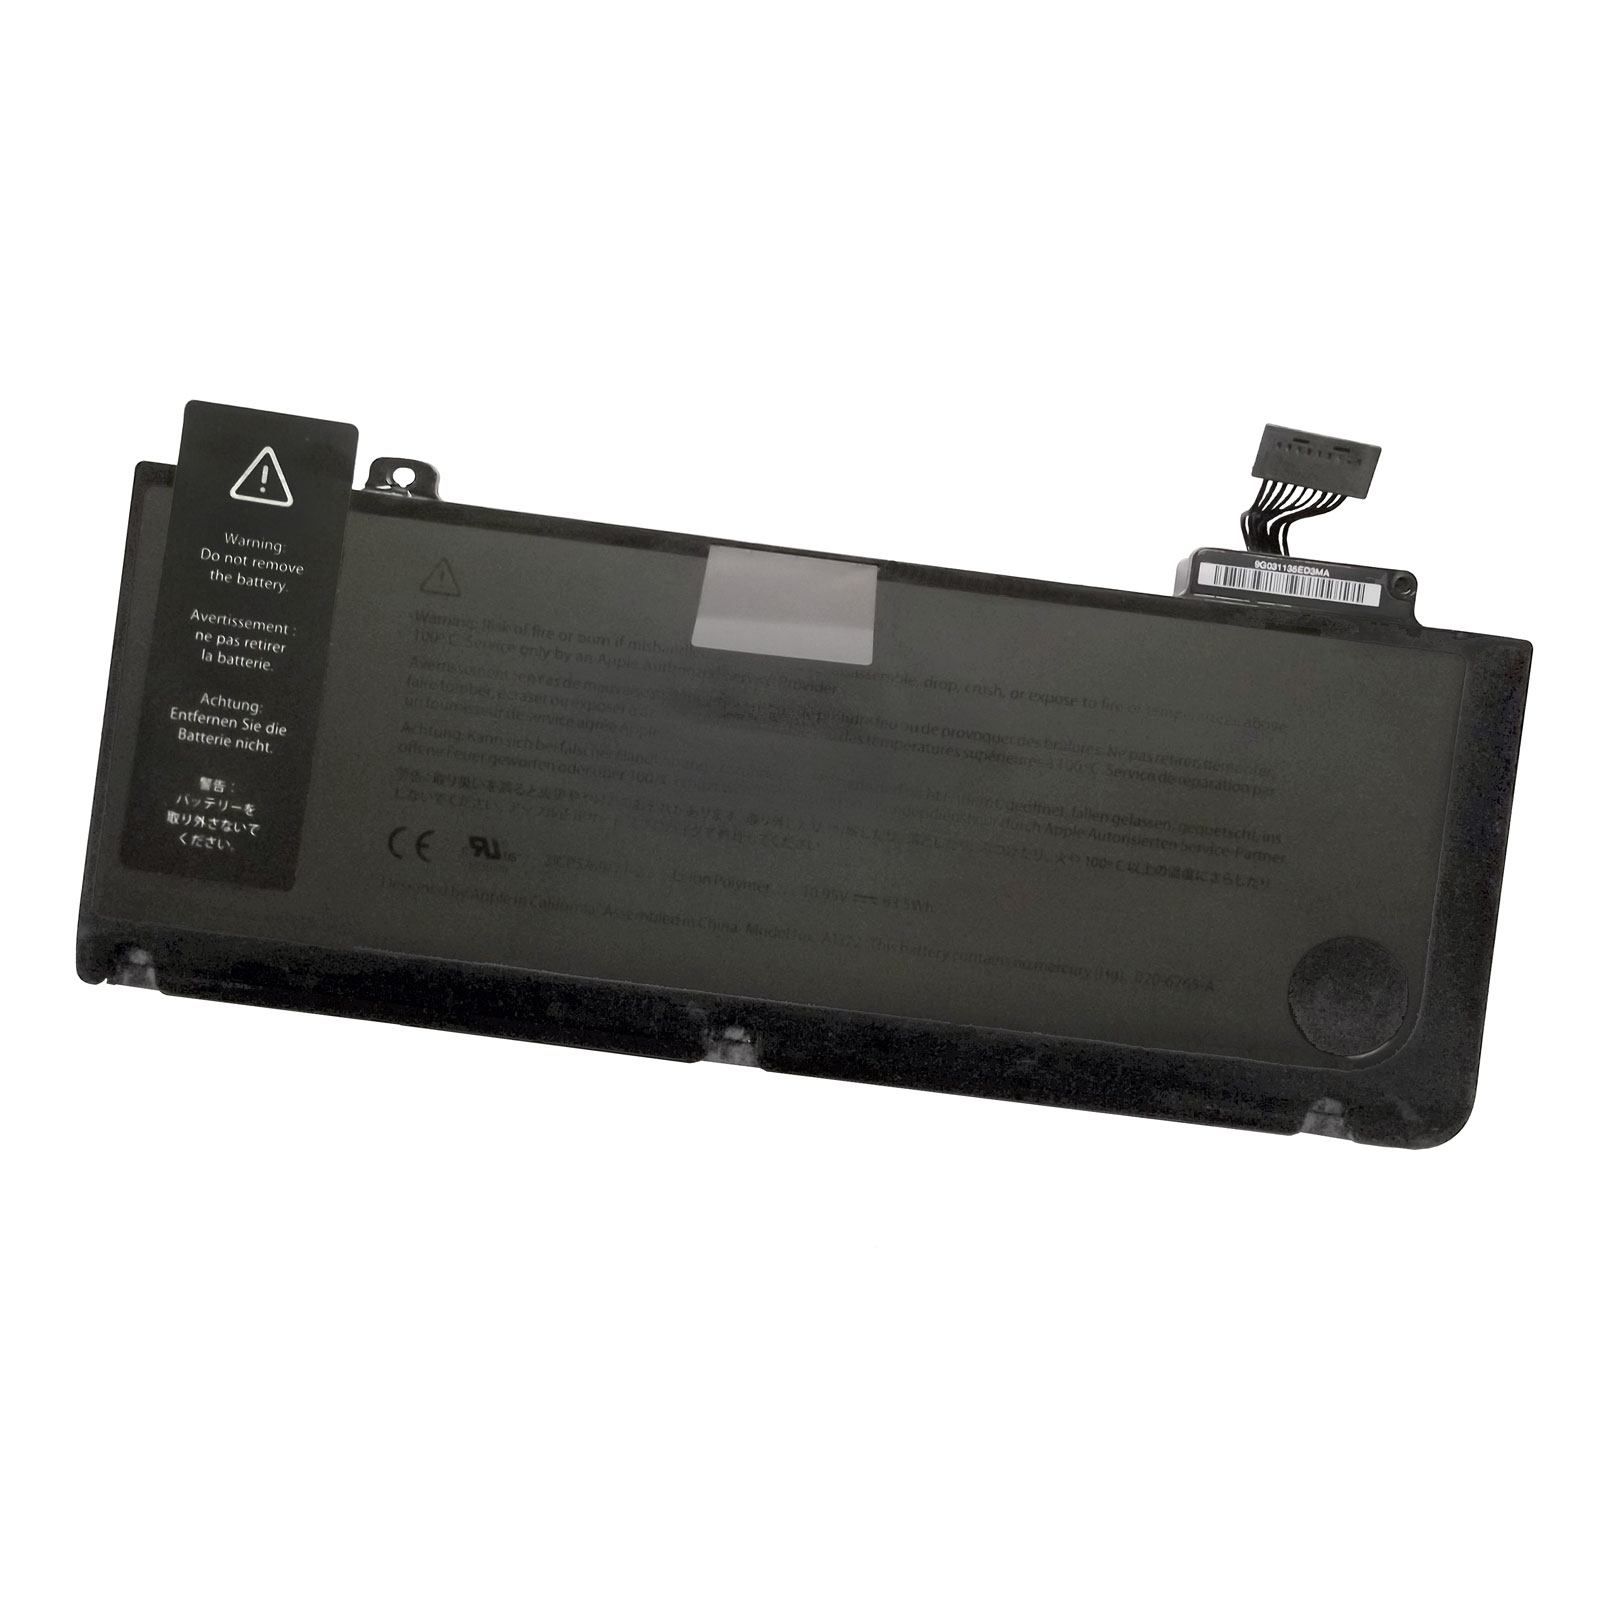 661 5229 battery a1322 apple macbook pro 13 mid 2009 mid 2010 early 2011 late 2011 mid